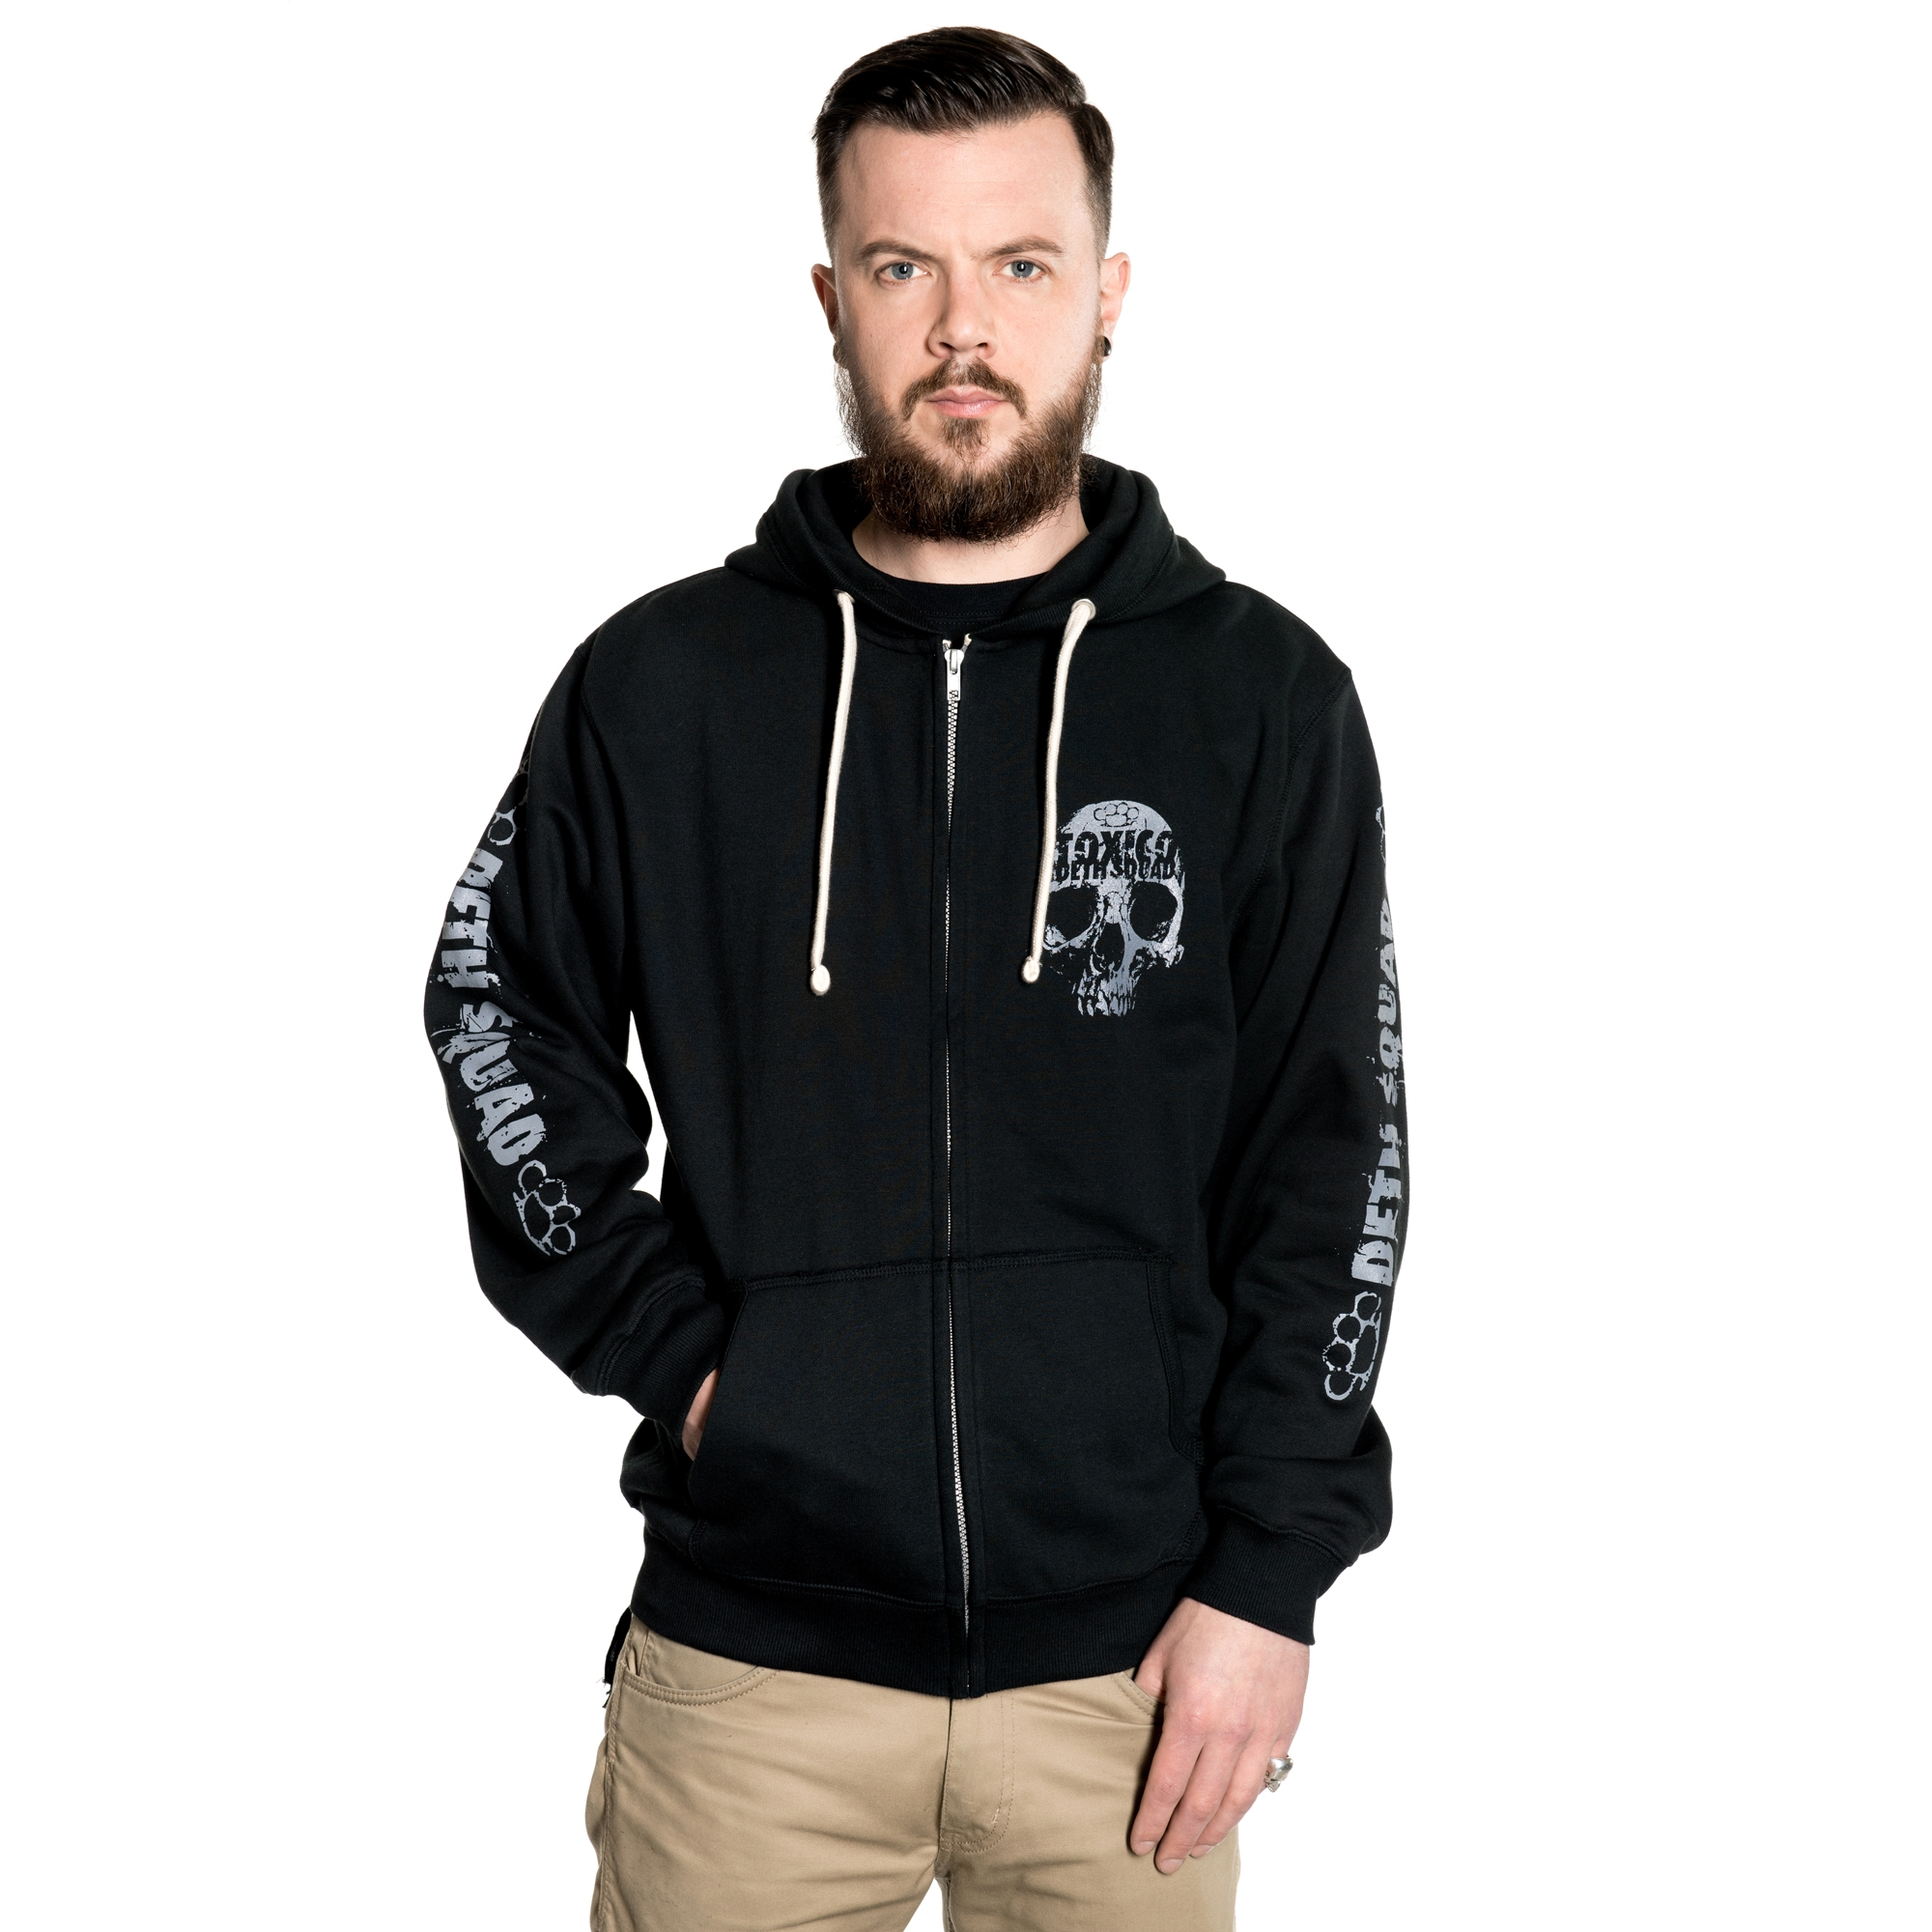 rebelsmarket_toxico_clothing_deth_squad_zip_hood_hoodies_and_sweatshirts_5.jpg